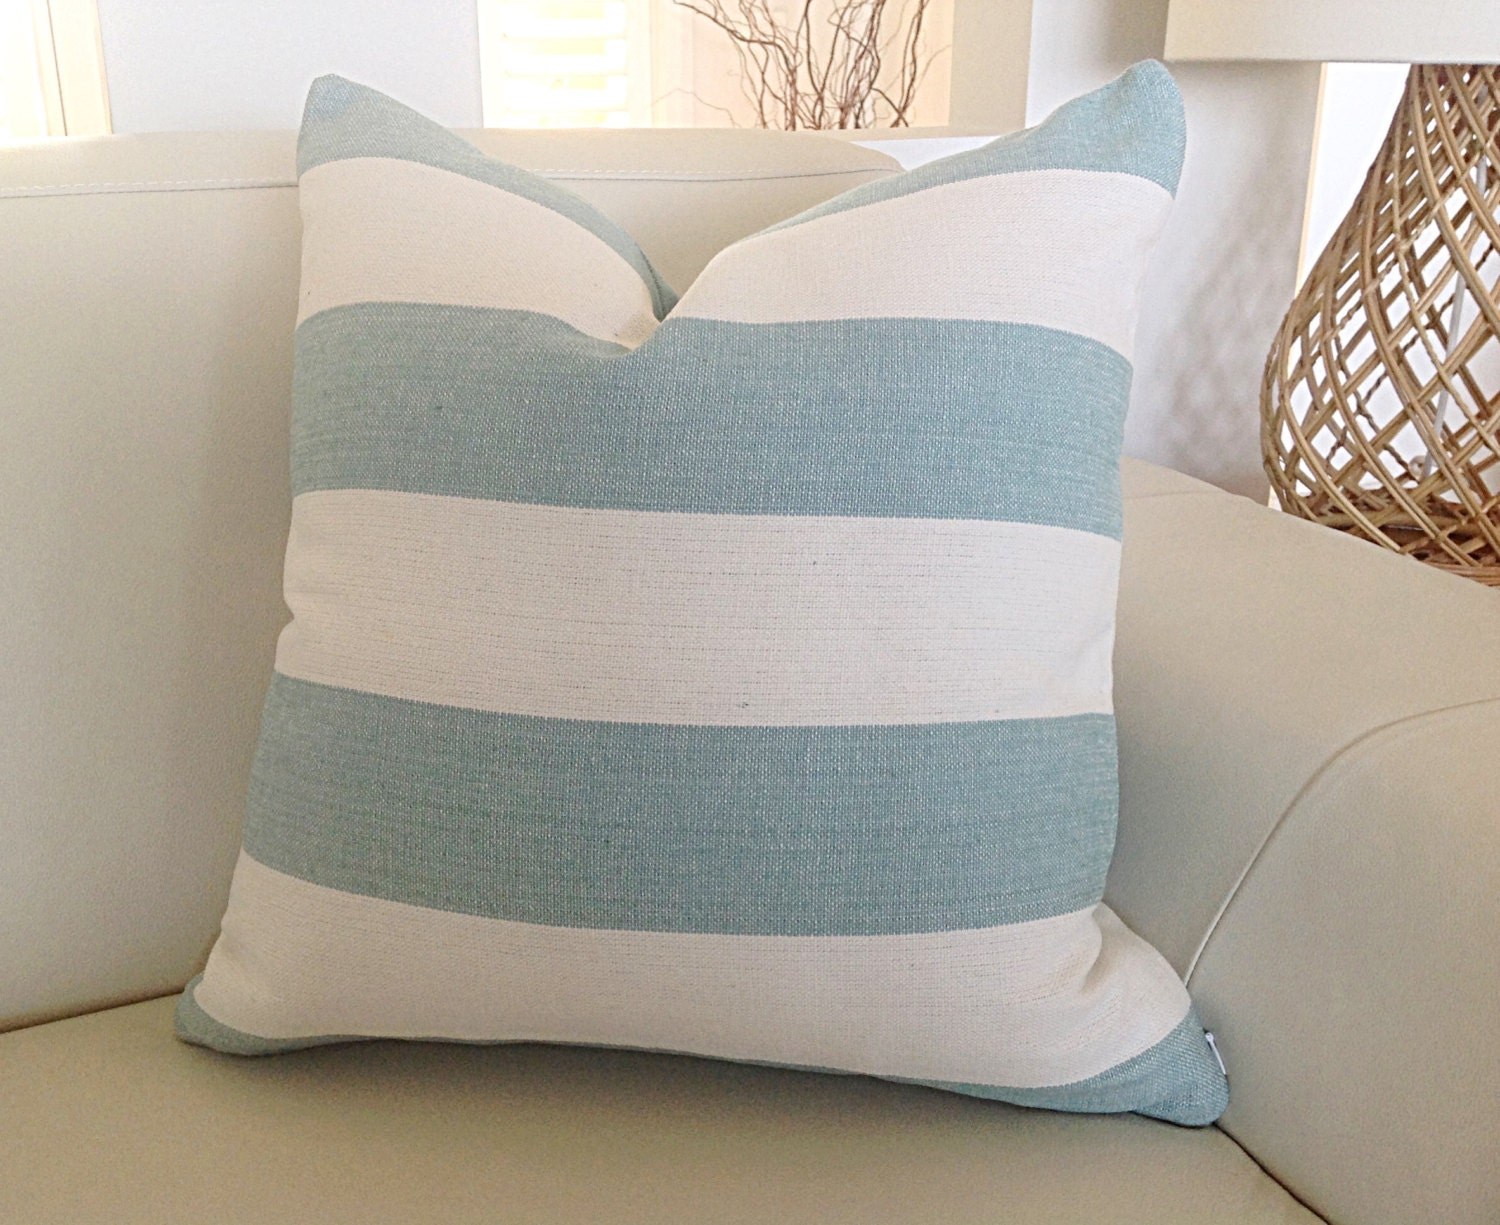 diy pillow pillows outside doodles beach turq stitches